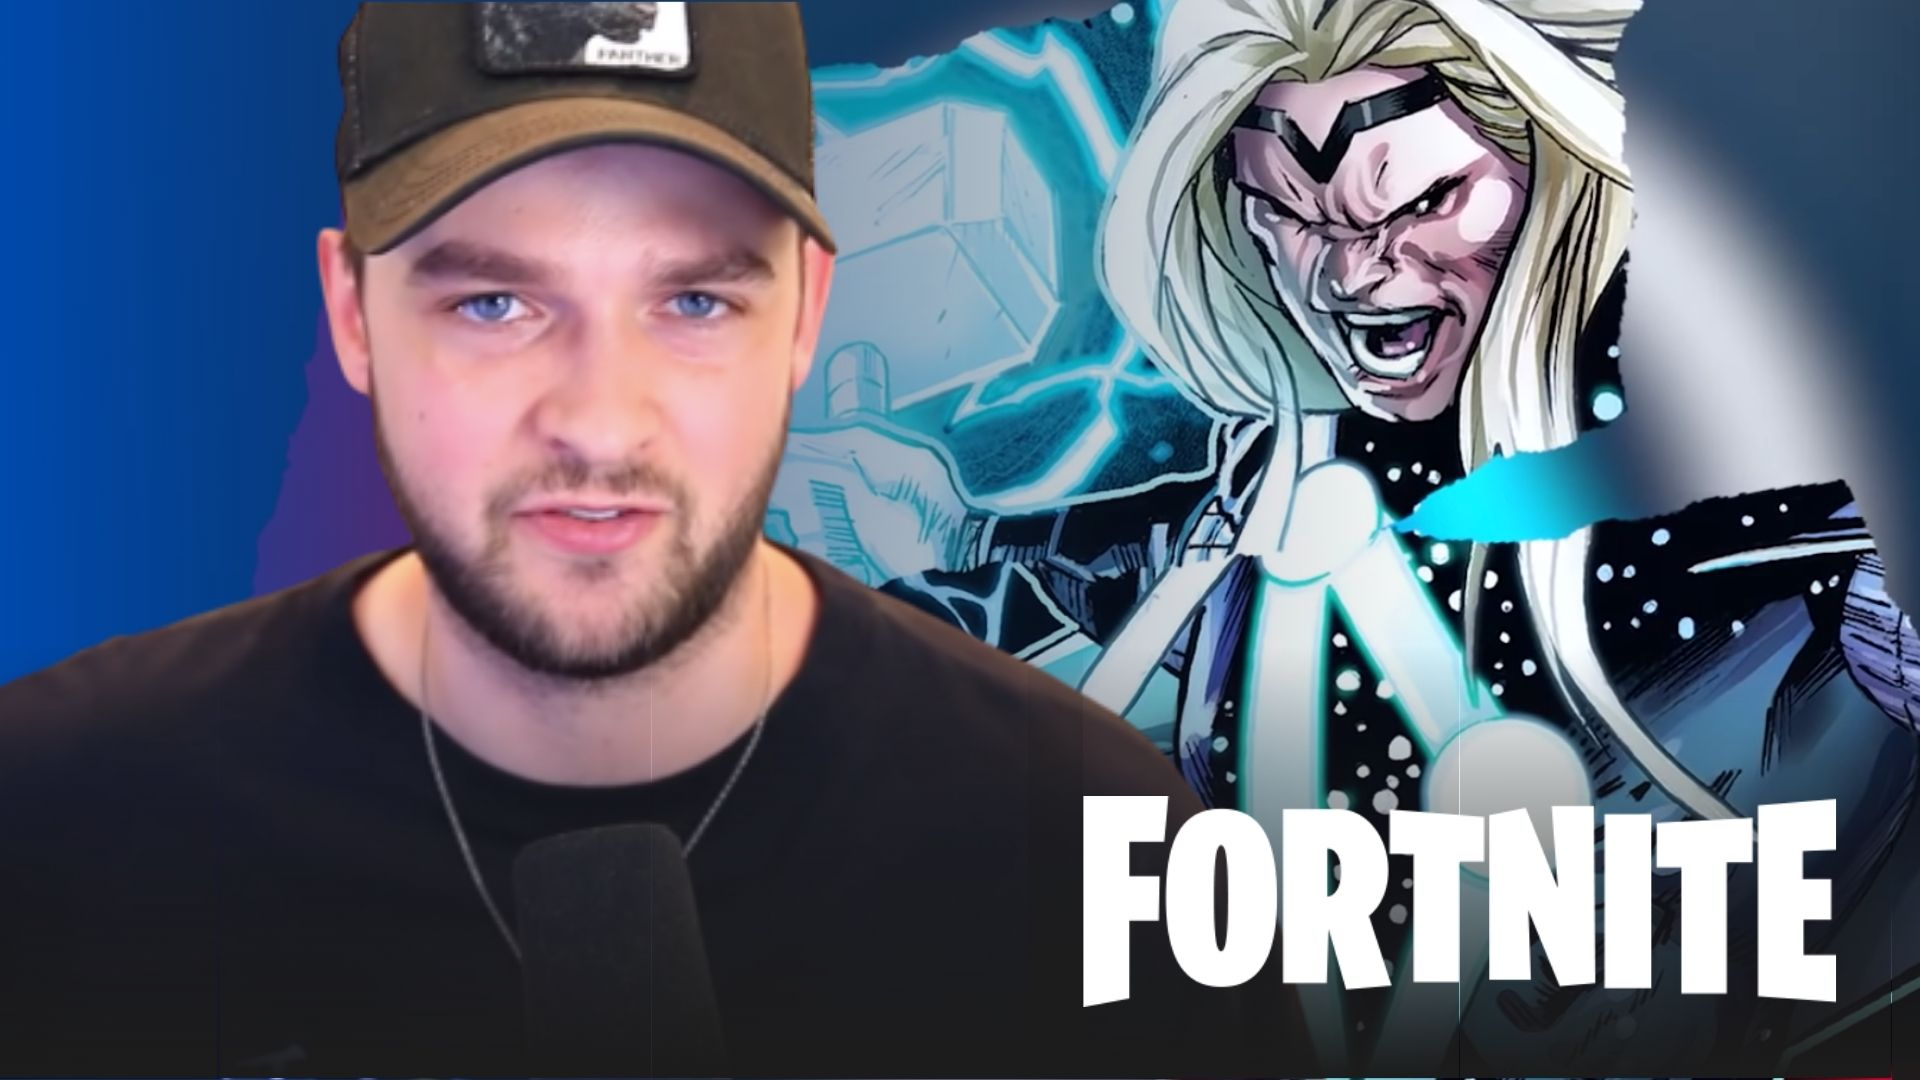 Fortnite teaser and Ali A